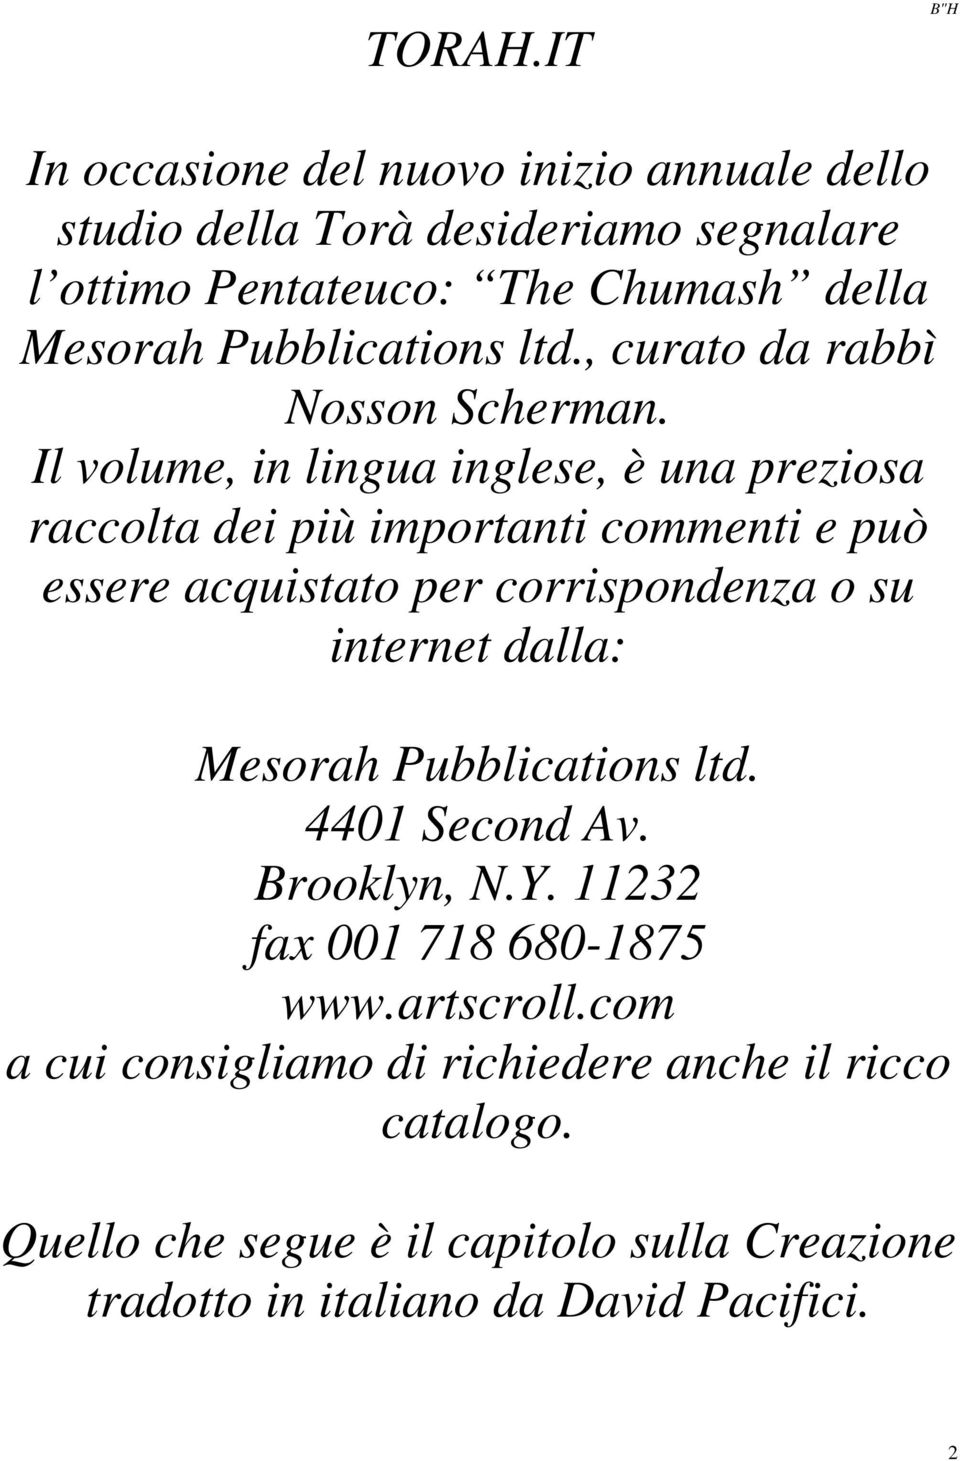 Pubblications ltd., curato da rabbì Nosson Scherman.